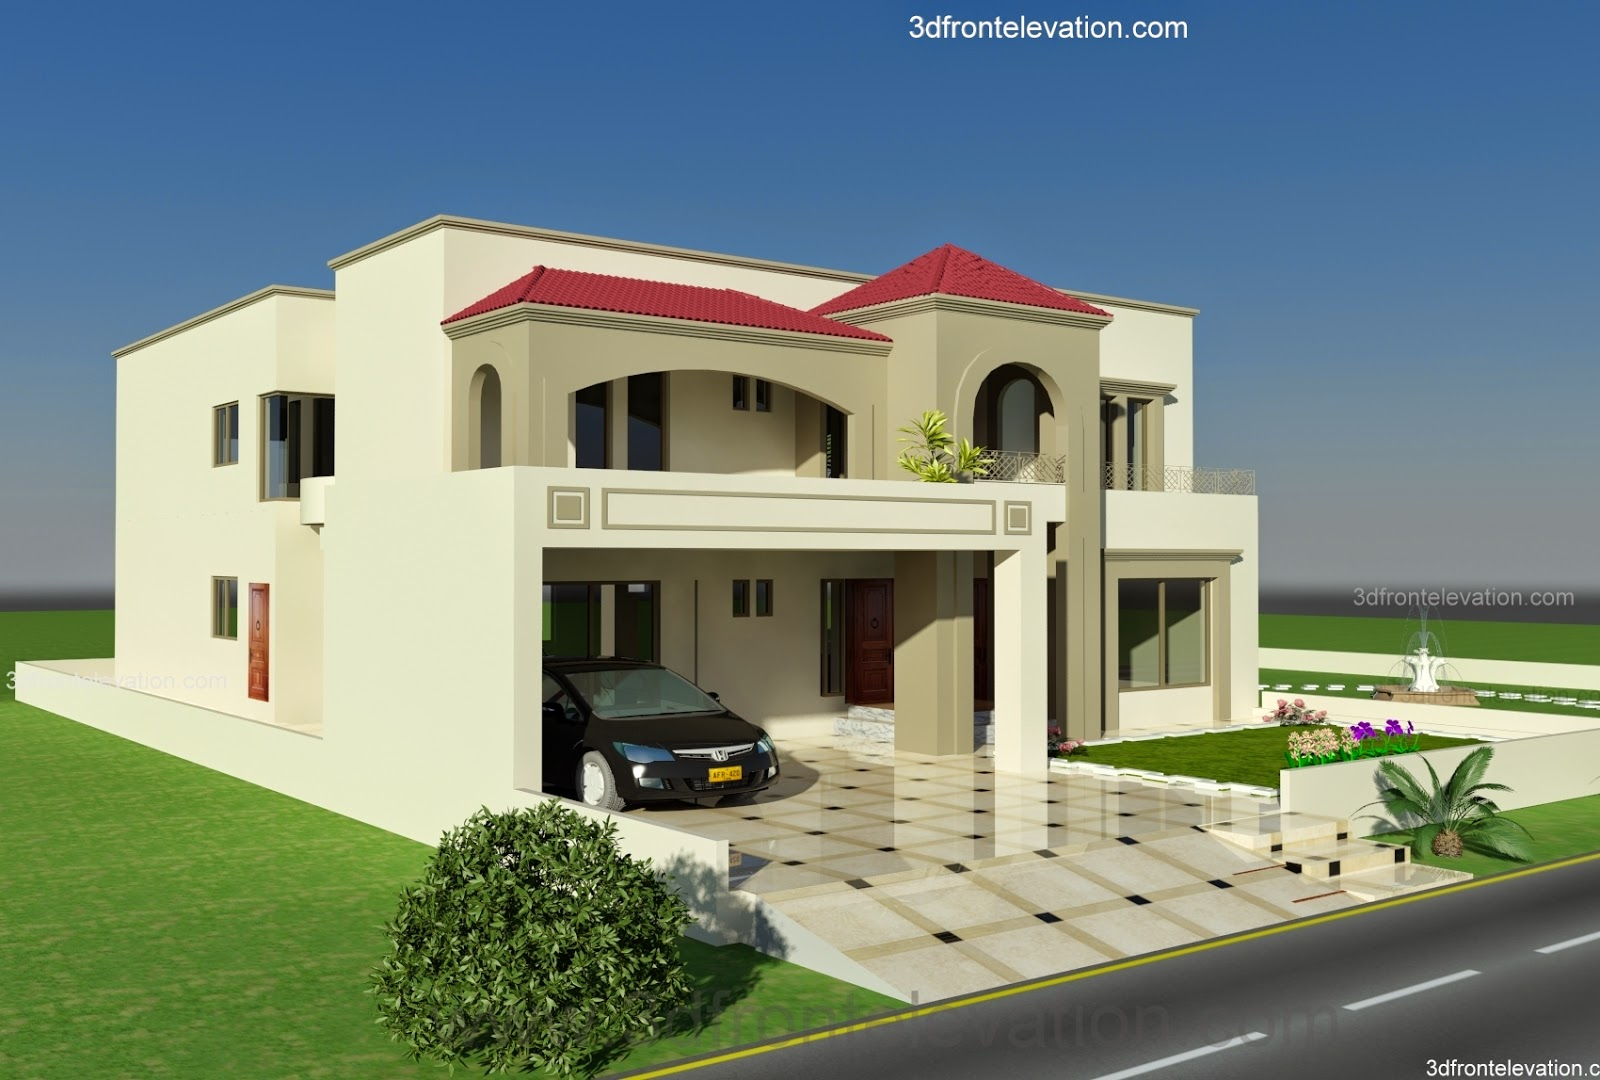 kanal plot house design europen style in bahria town lahore